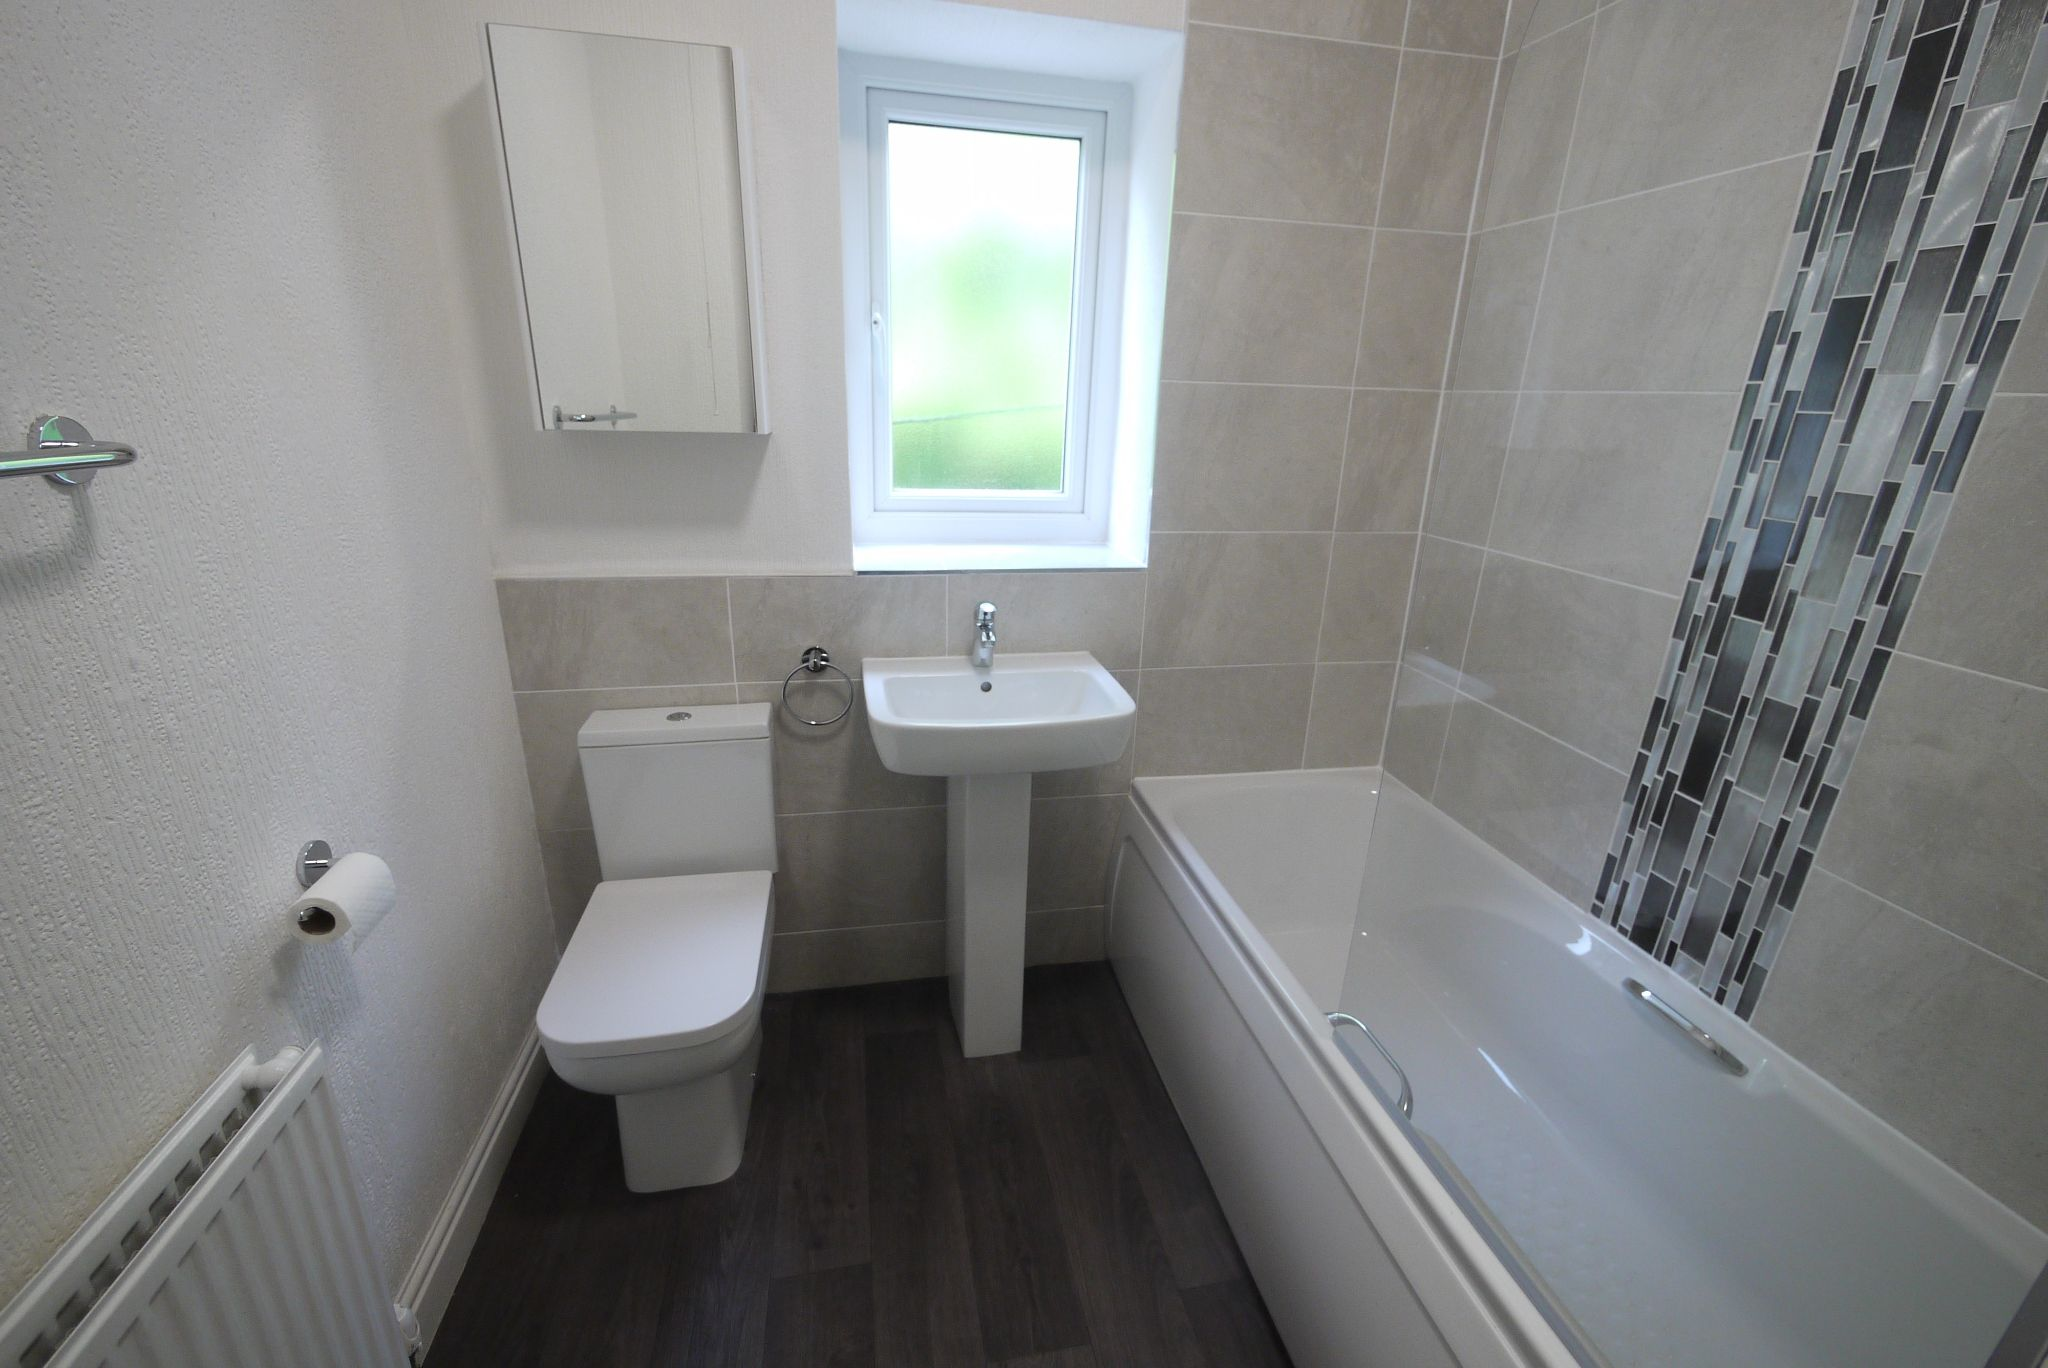 2 bedroom mid terraced house To Let in Halifax - Bathroom.